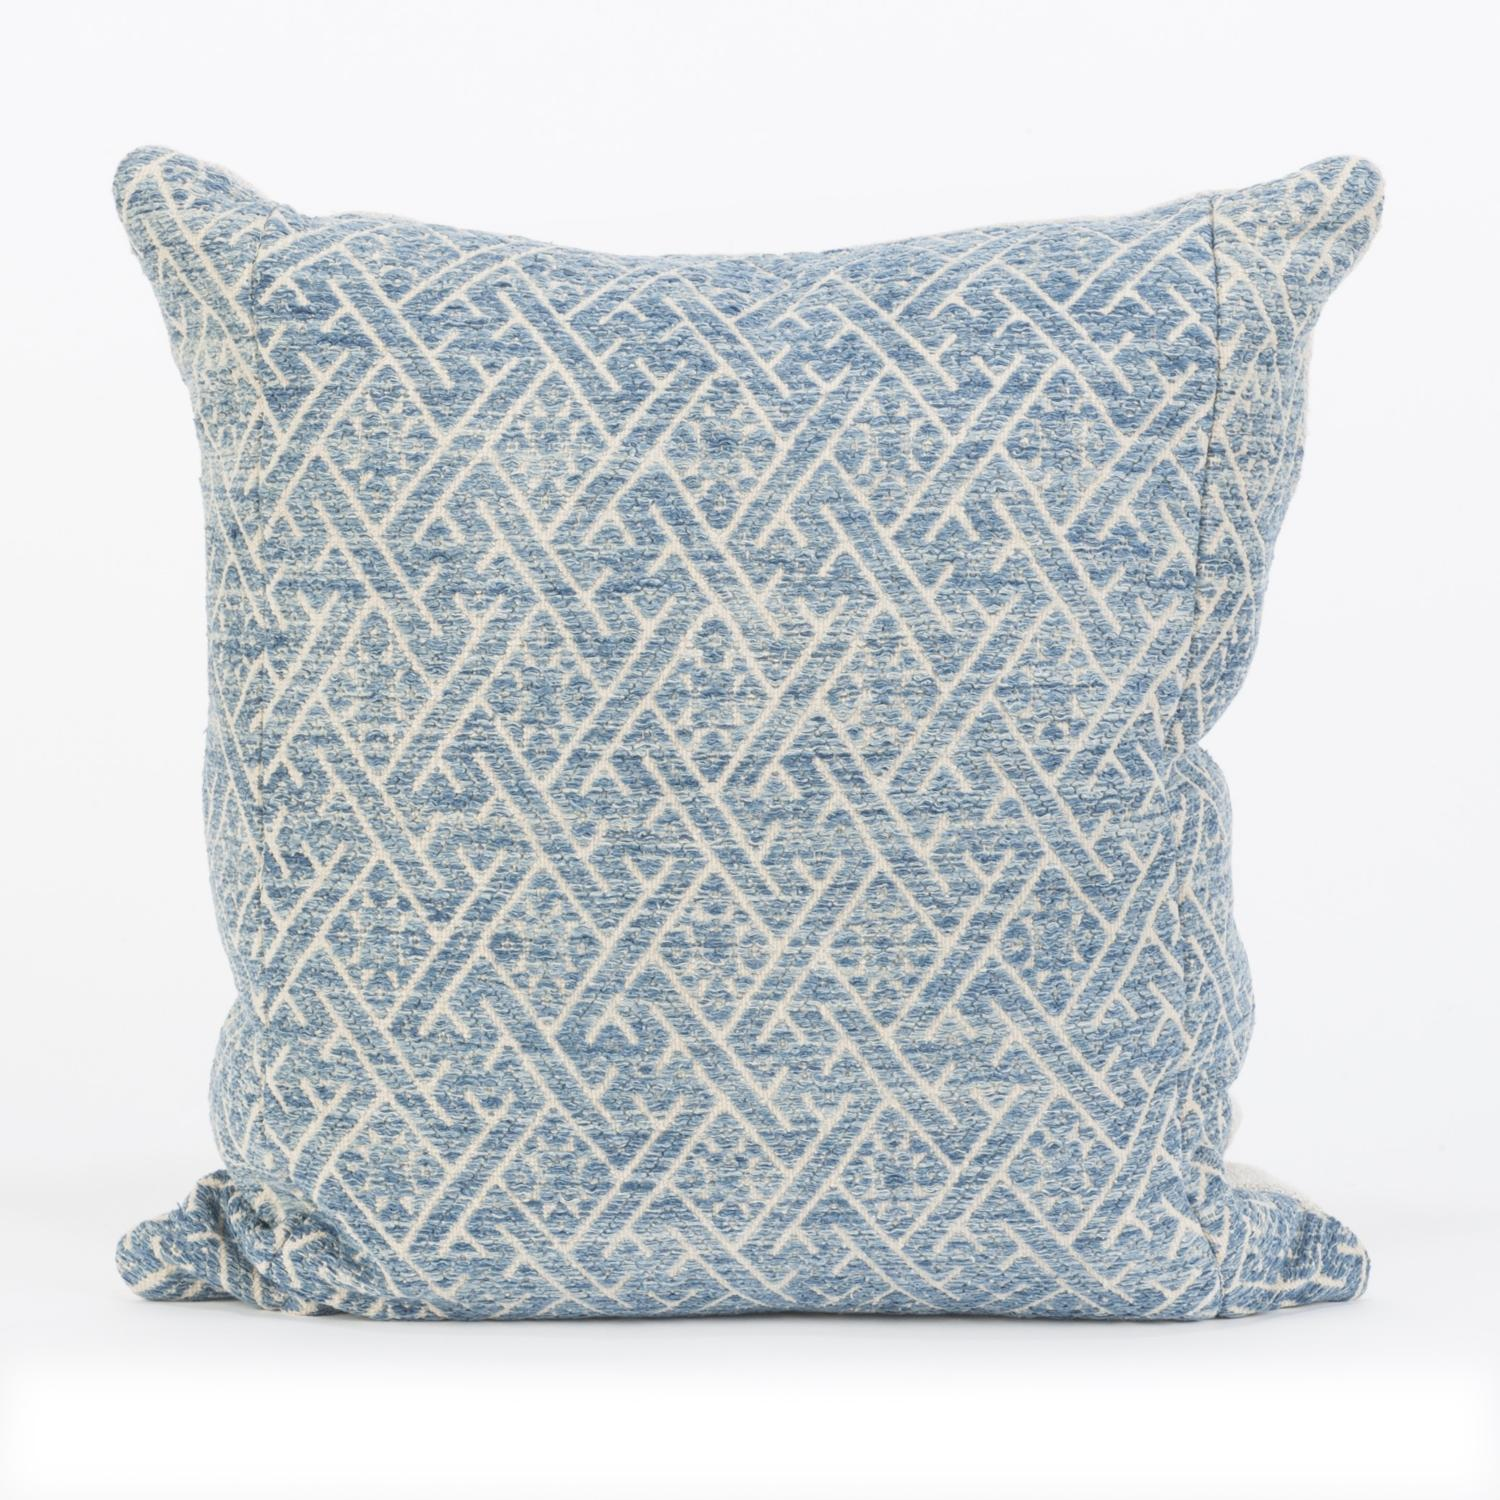 Indigo Zhuang Wedding Blanket Cushions